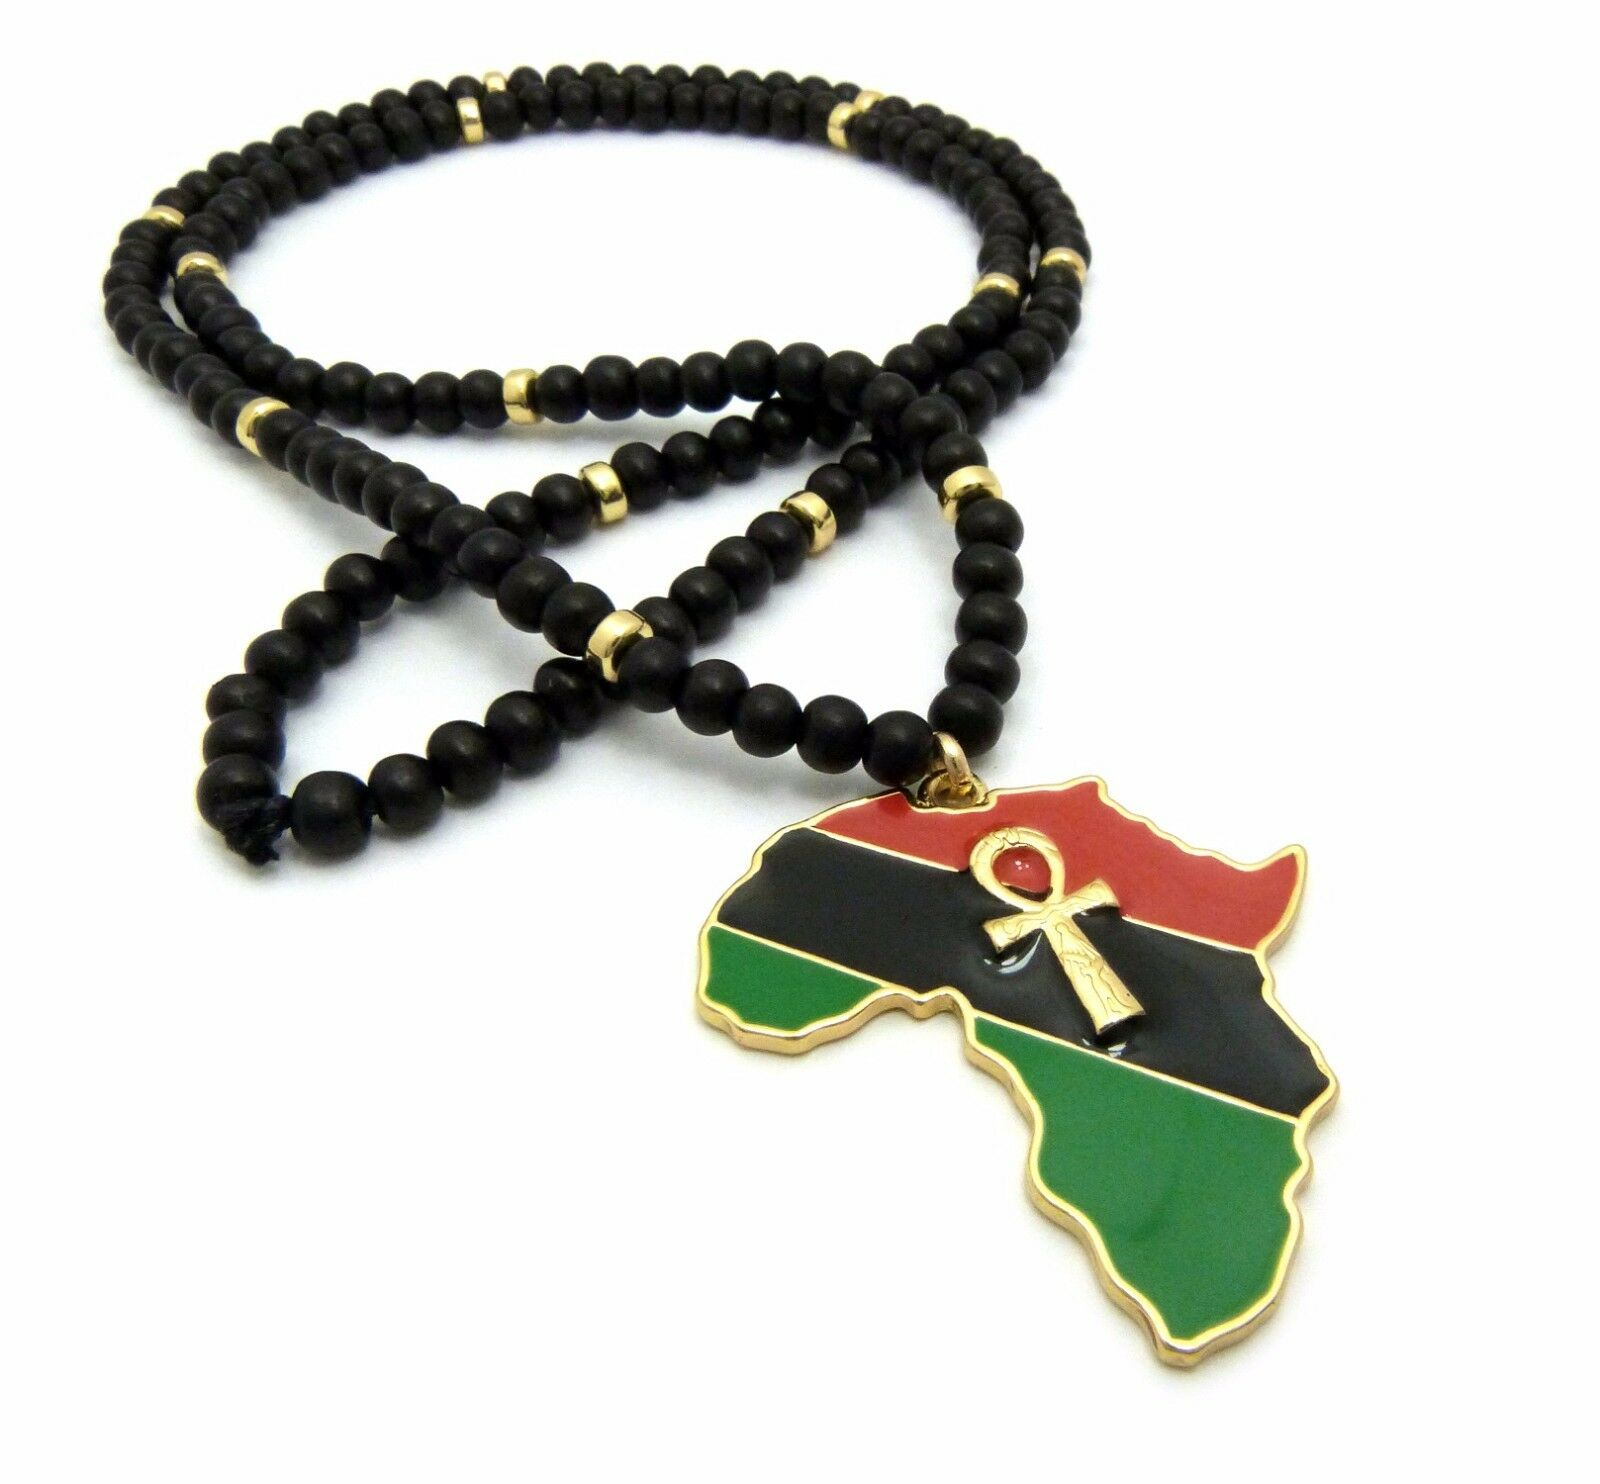 Africa pendant ebay new ankh cross africa pendant 30 wood bead chain hip hop necklace rc2517g aloadofball Image collections